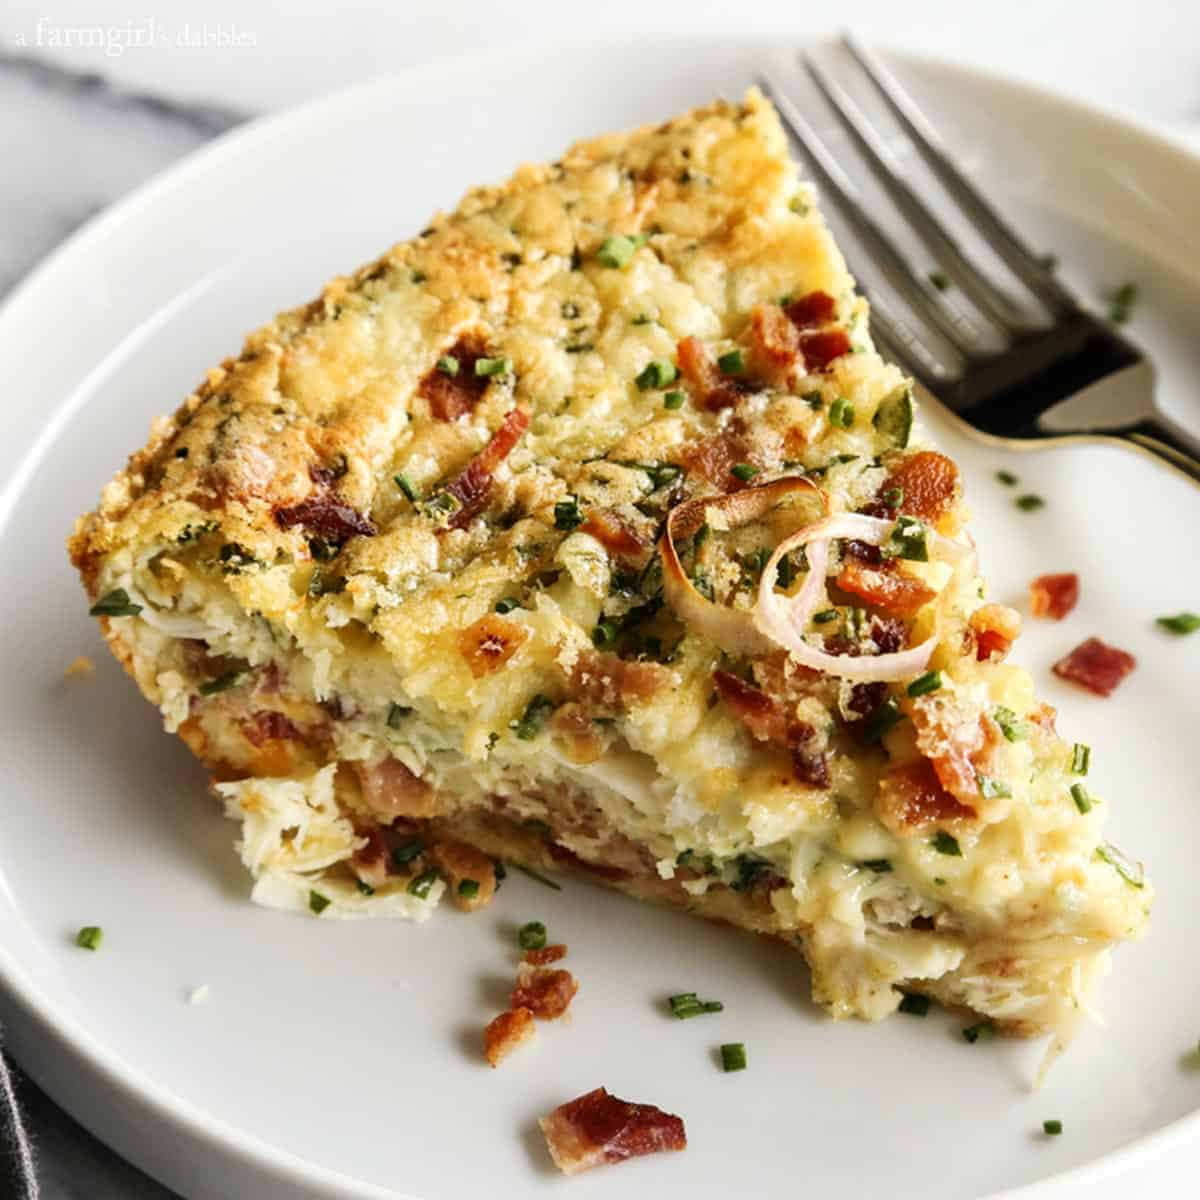 Garden Vegetable Crustless Quiche: Herby-Crustless-Quiche-with-Crab-and-Bacon